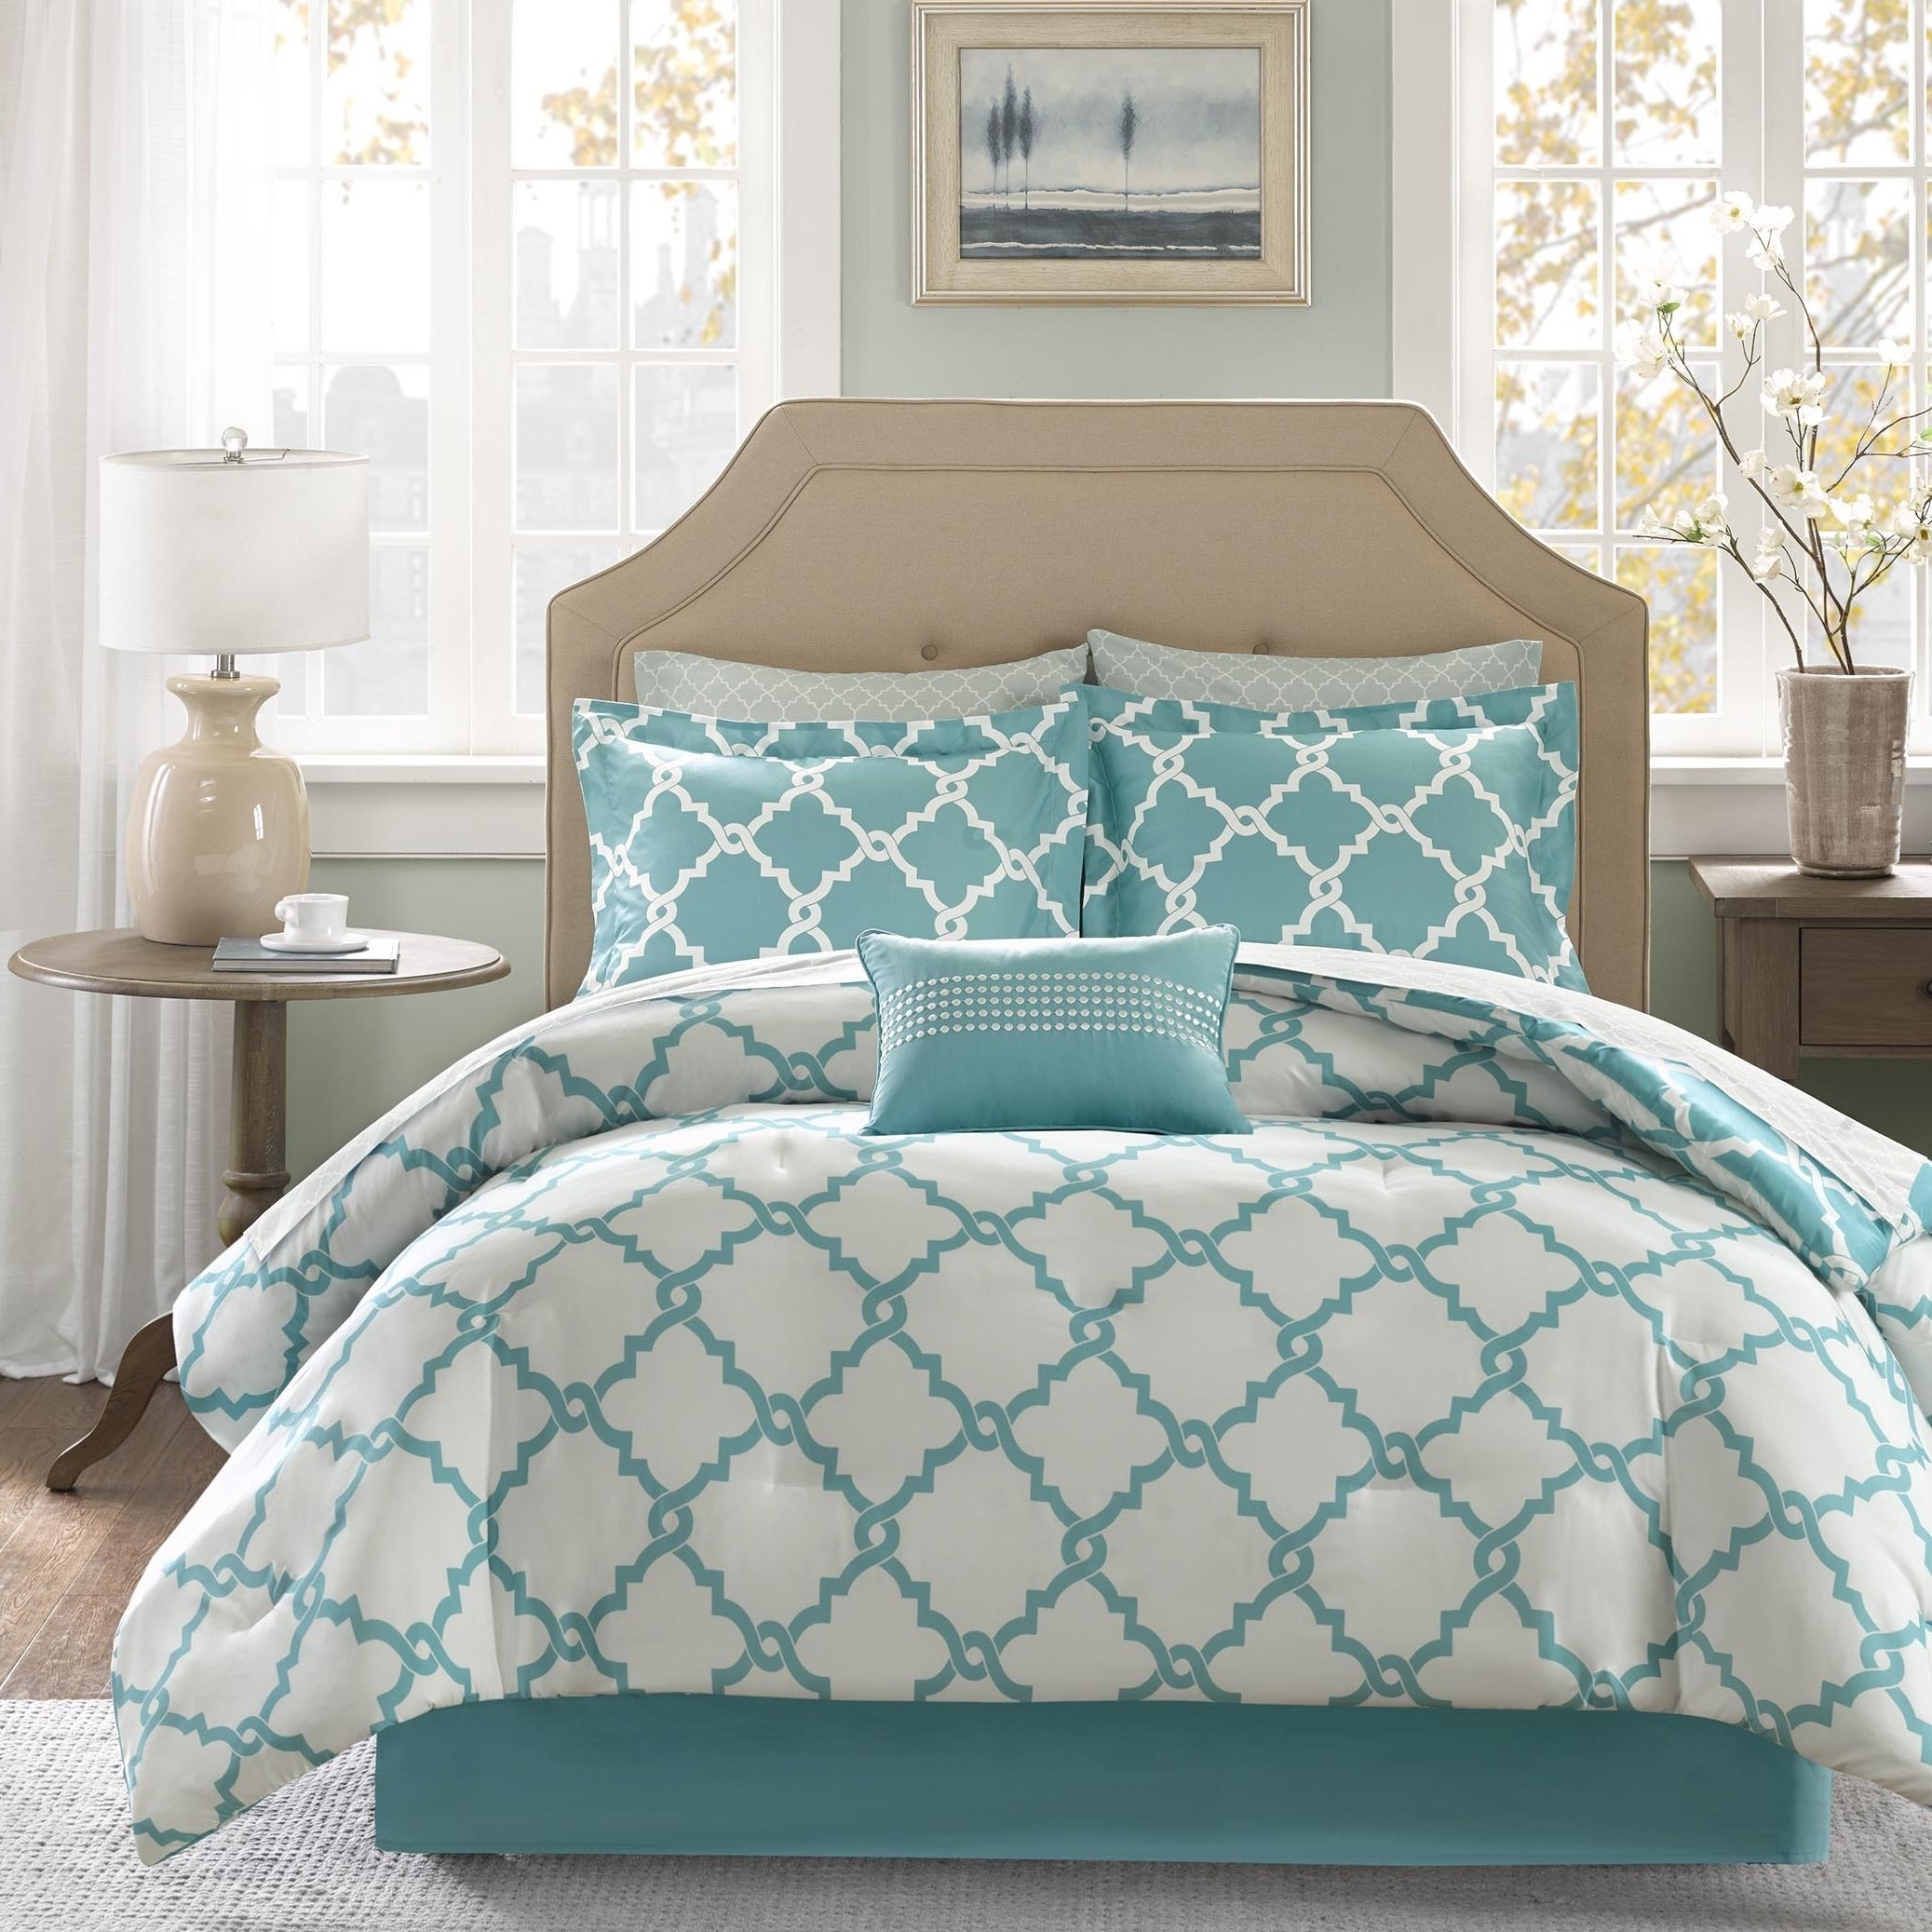 7 Piece Vibrant Meridian Pattern Twin Size Sheet Set, High End Luxury Simple Chic Geometric Patterned Style Elegant Bedding, Contemporary Rich Hotel Collection Modern Design Bedroom, Teal, White